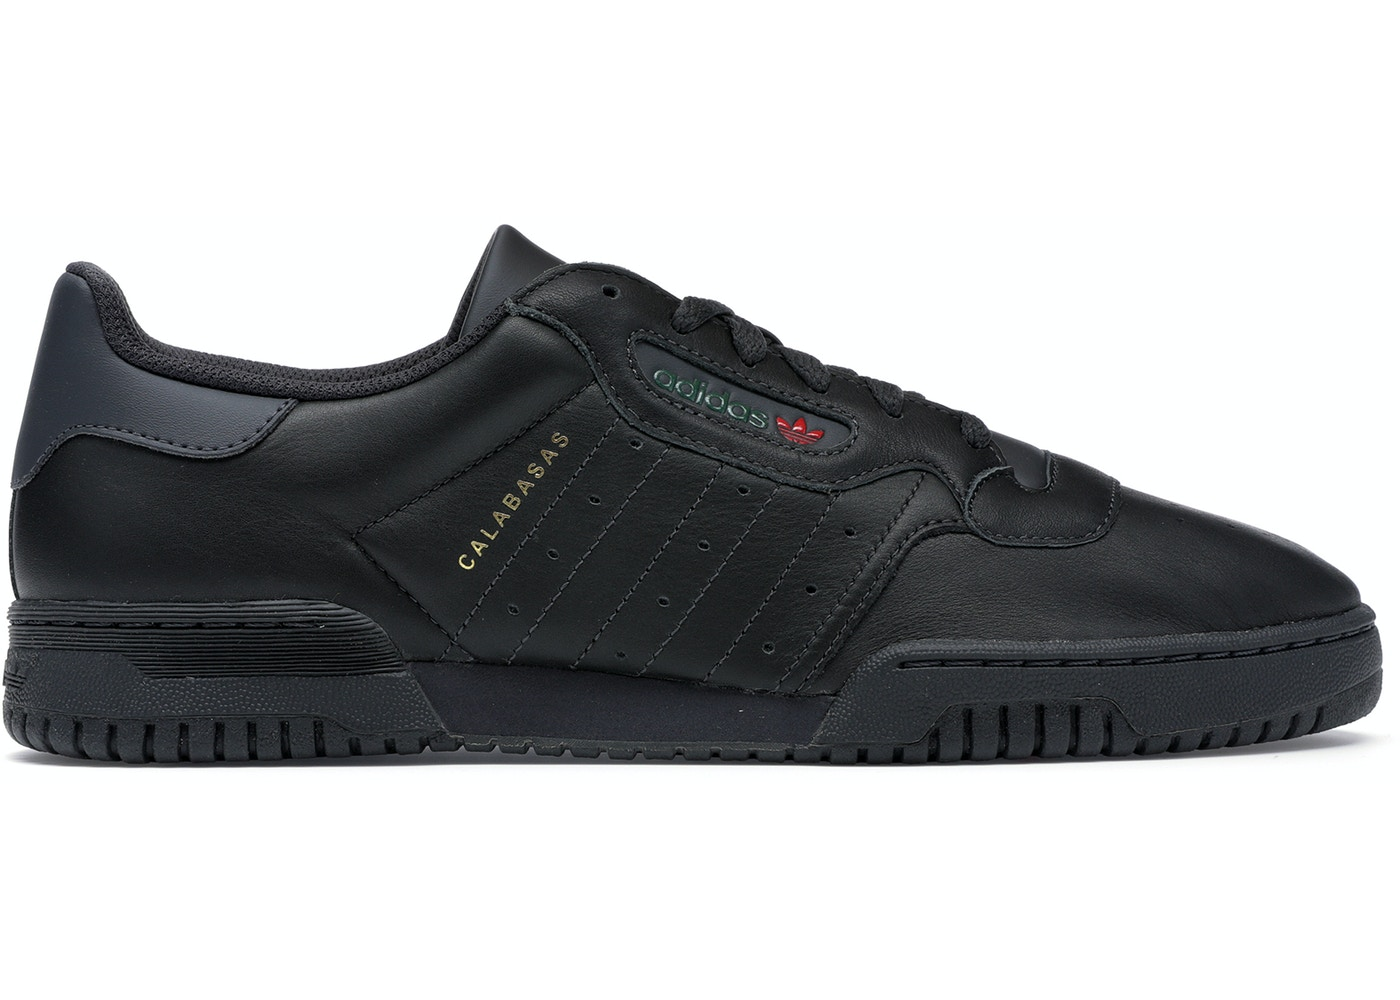 294009815d5 Buy adidas Yeezy Powerphase Shoes   Deadstock Sneakers